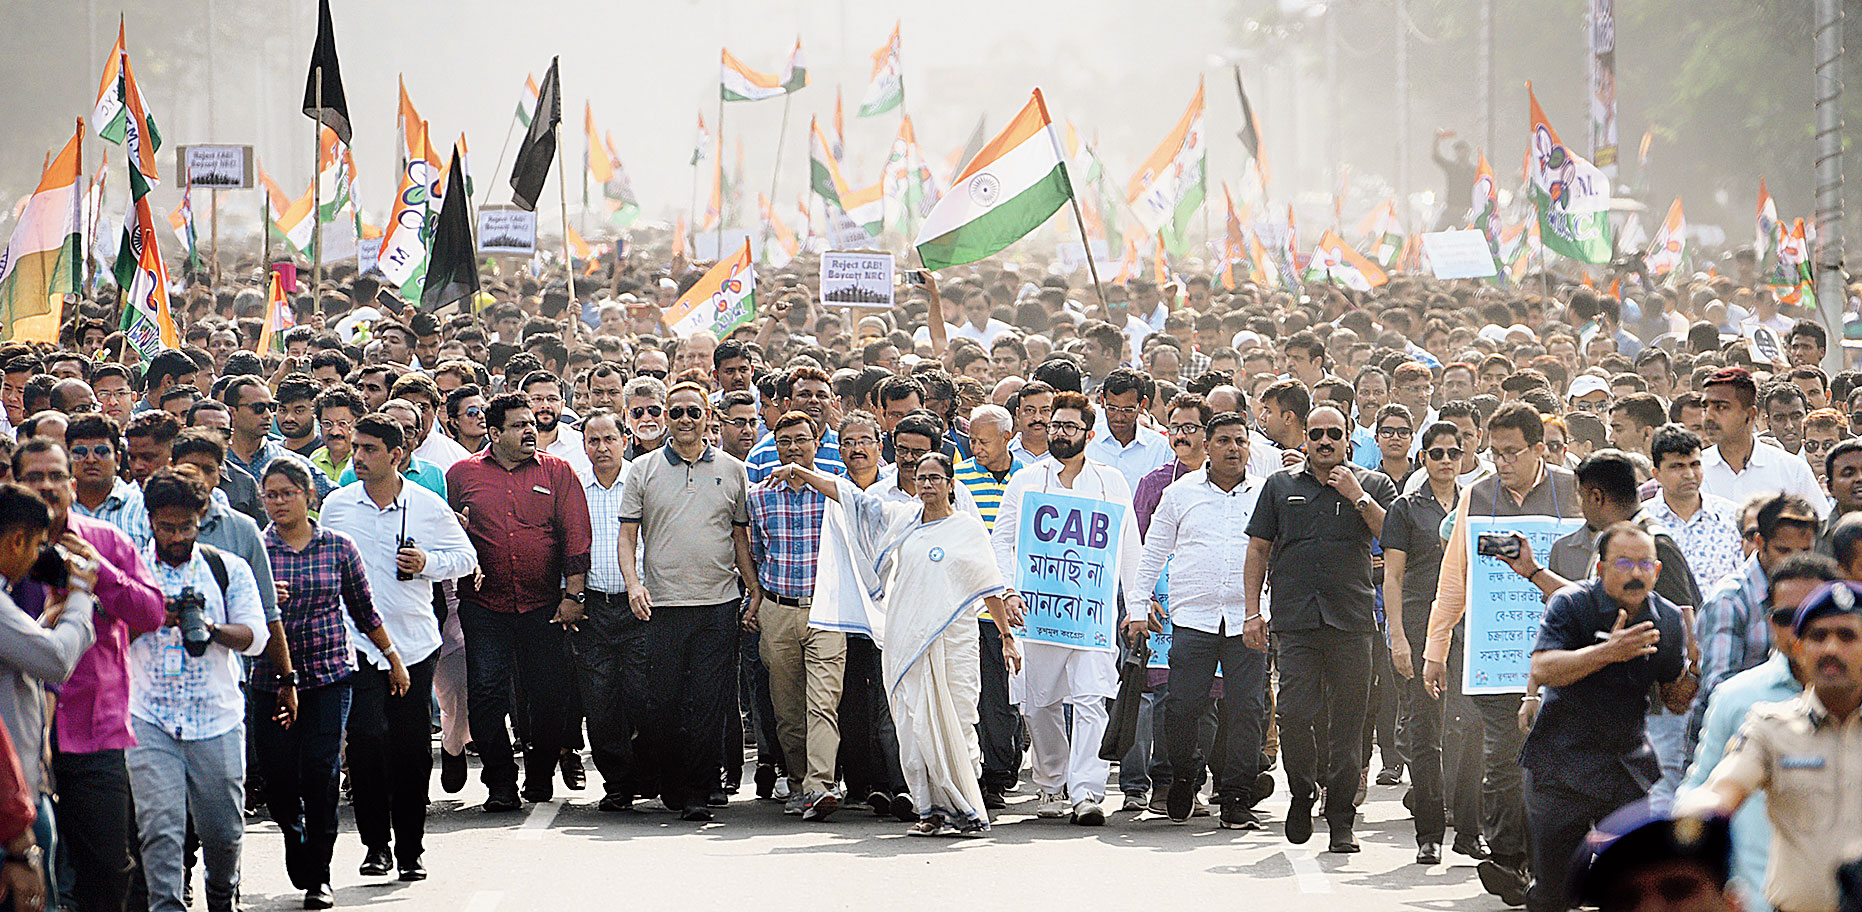 IN BENGAL: Mamata Banerjee leads a march in Calcutta